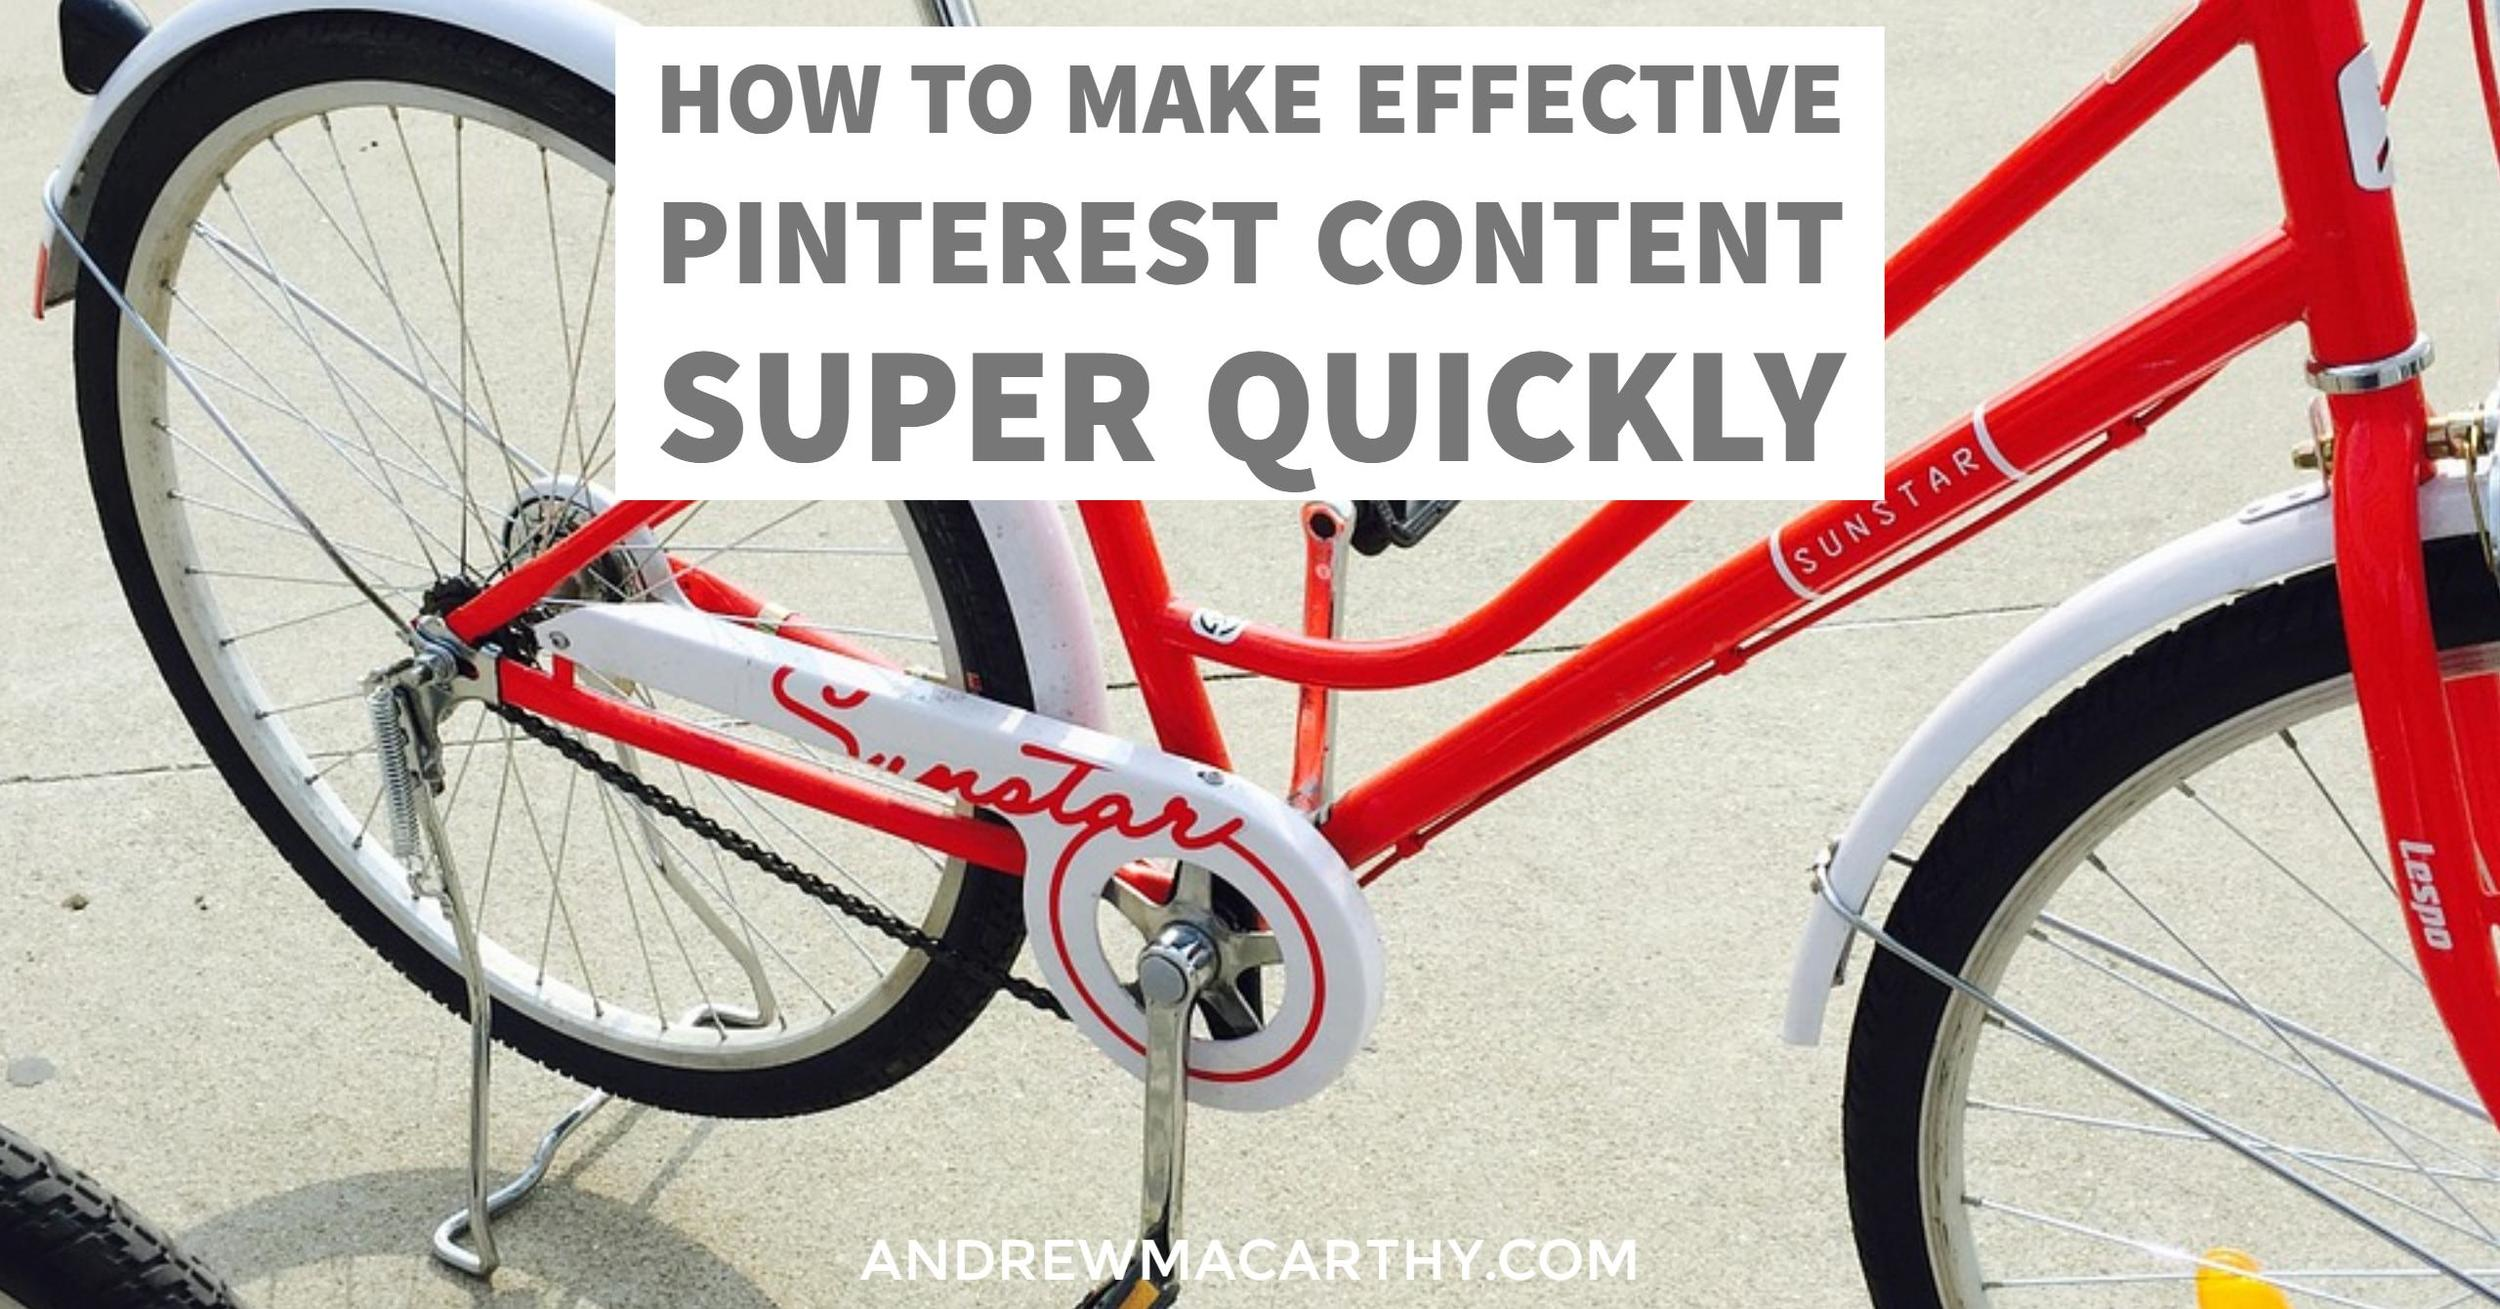 5 Strategies to Make Effective Pinterest Content Super Quickly